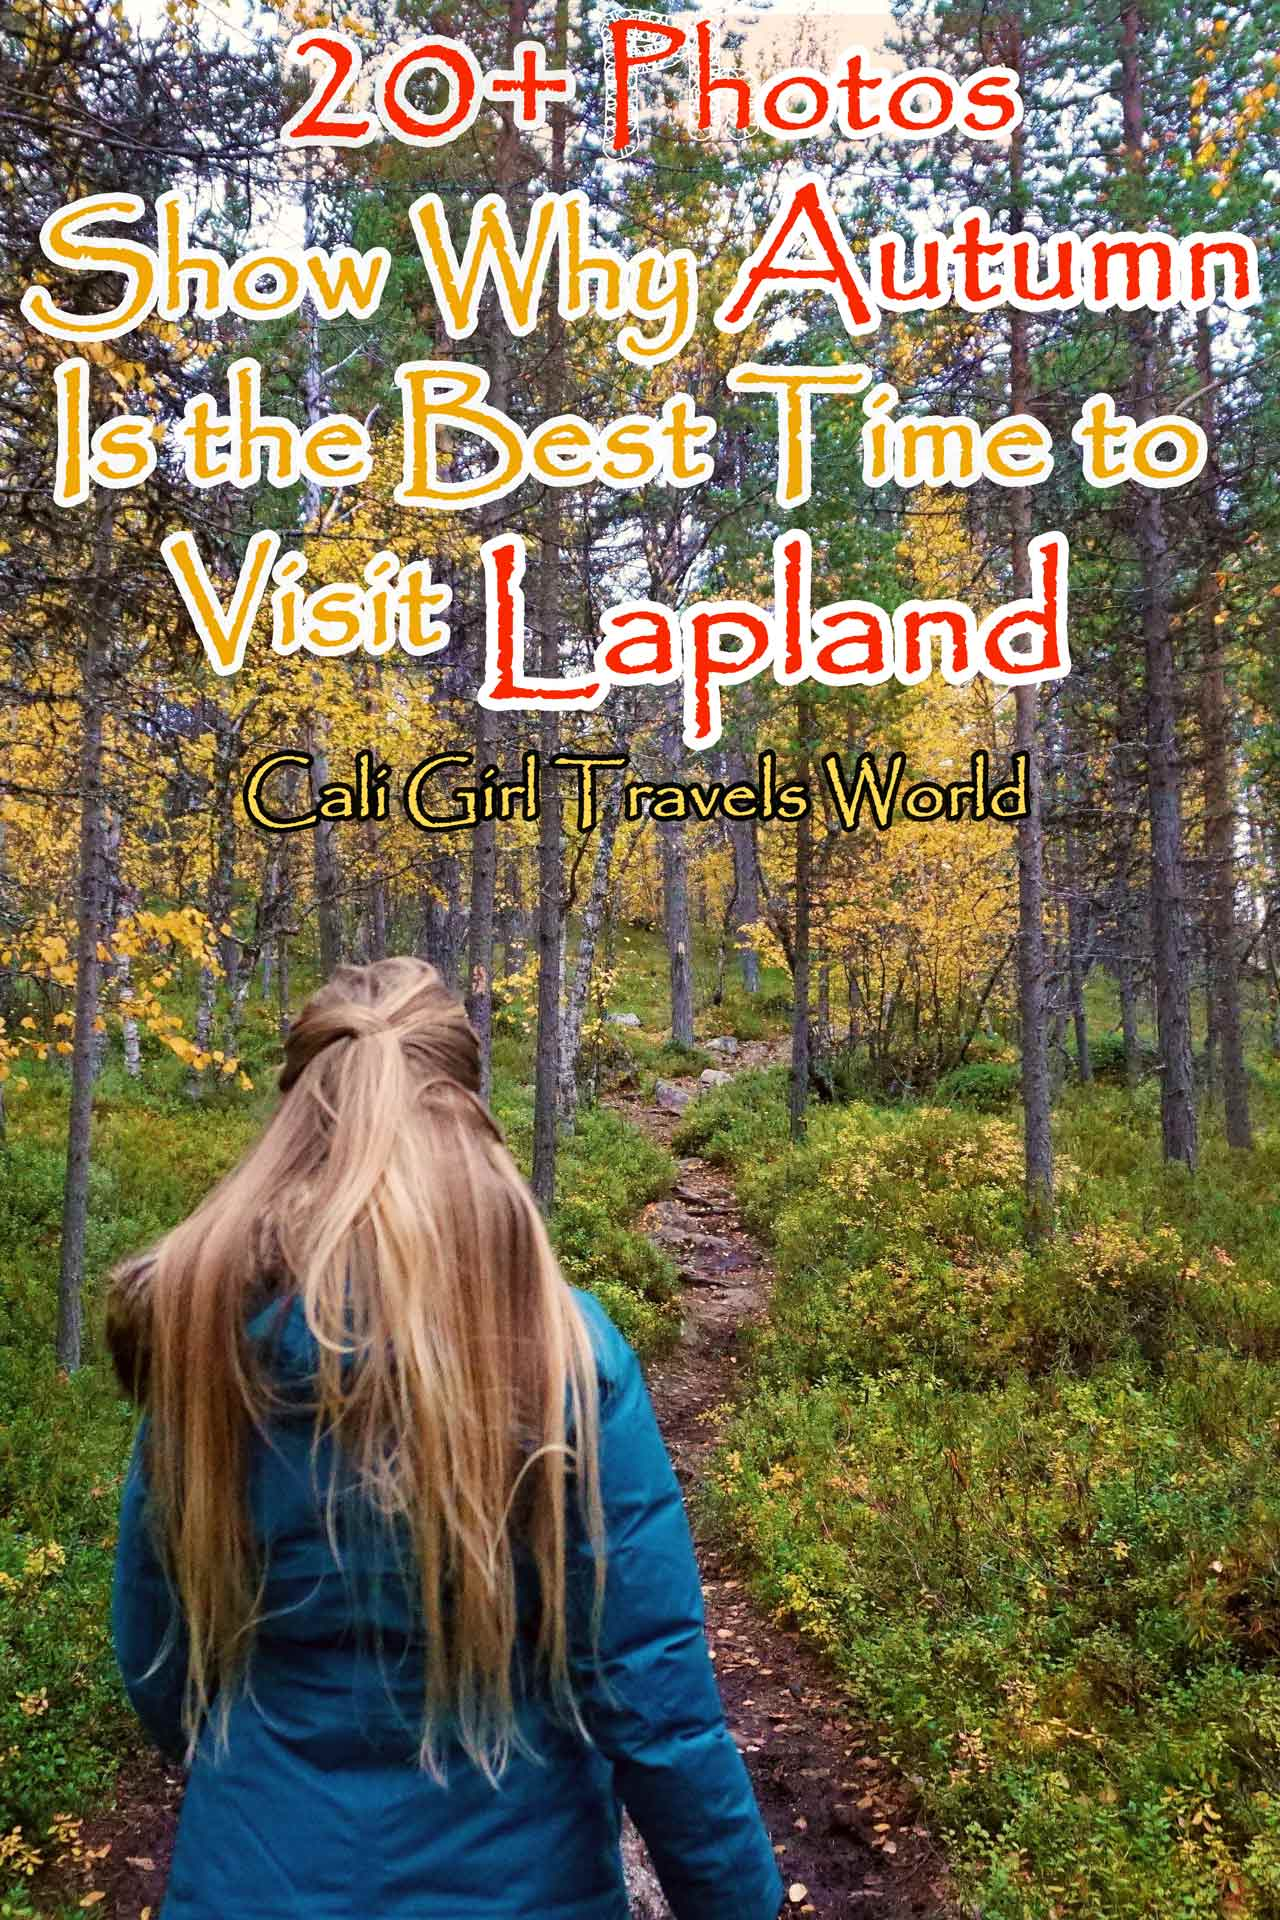 e2f6f7e7dfd Pinterest Pin for travel blog article about Lapland